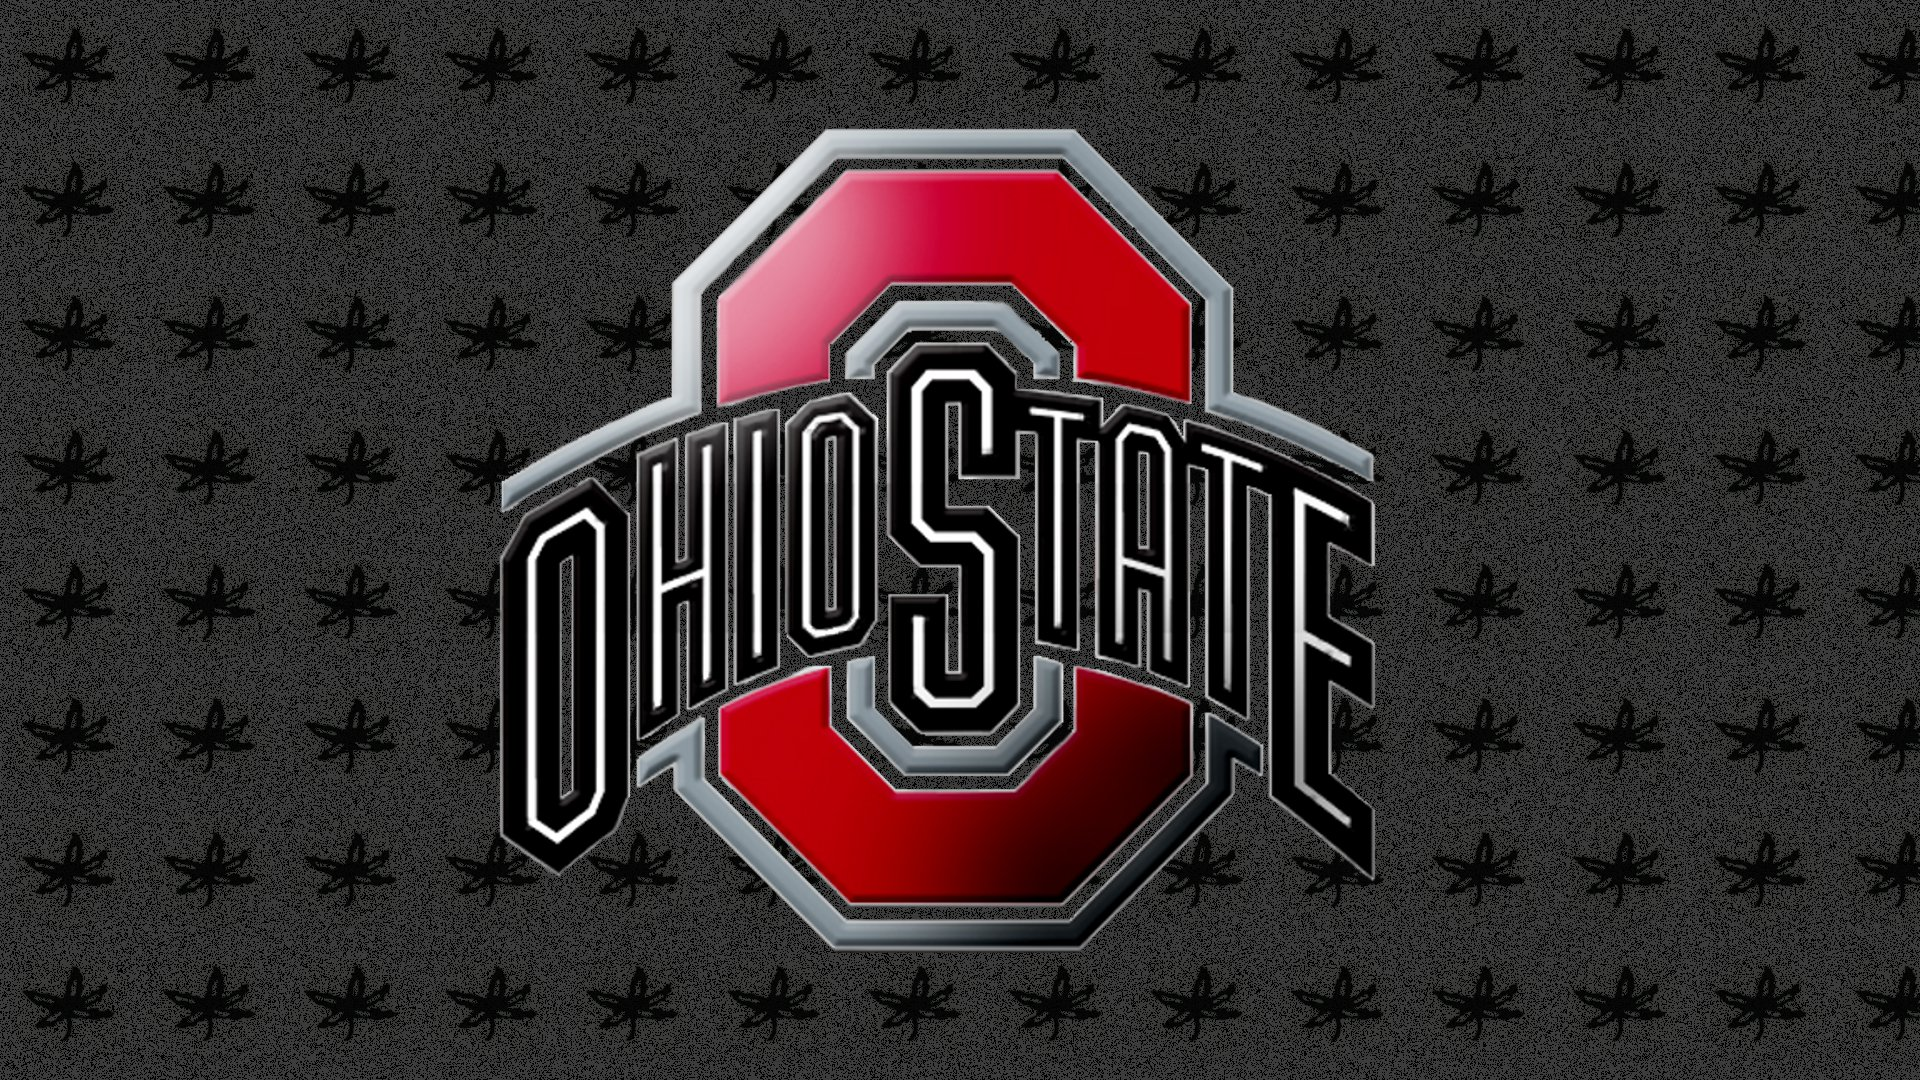 Ohio State Football OSU Desktop Wallpaper 55 by fanpopcom 1920x1080